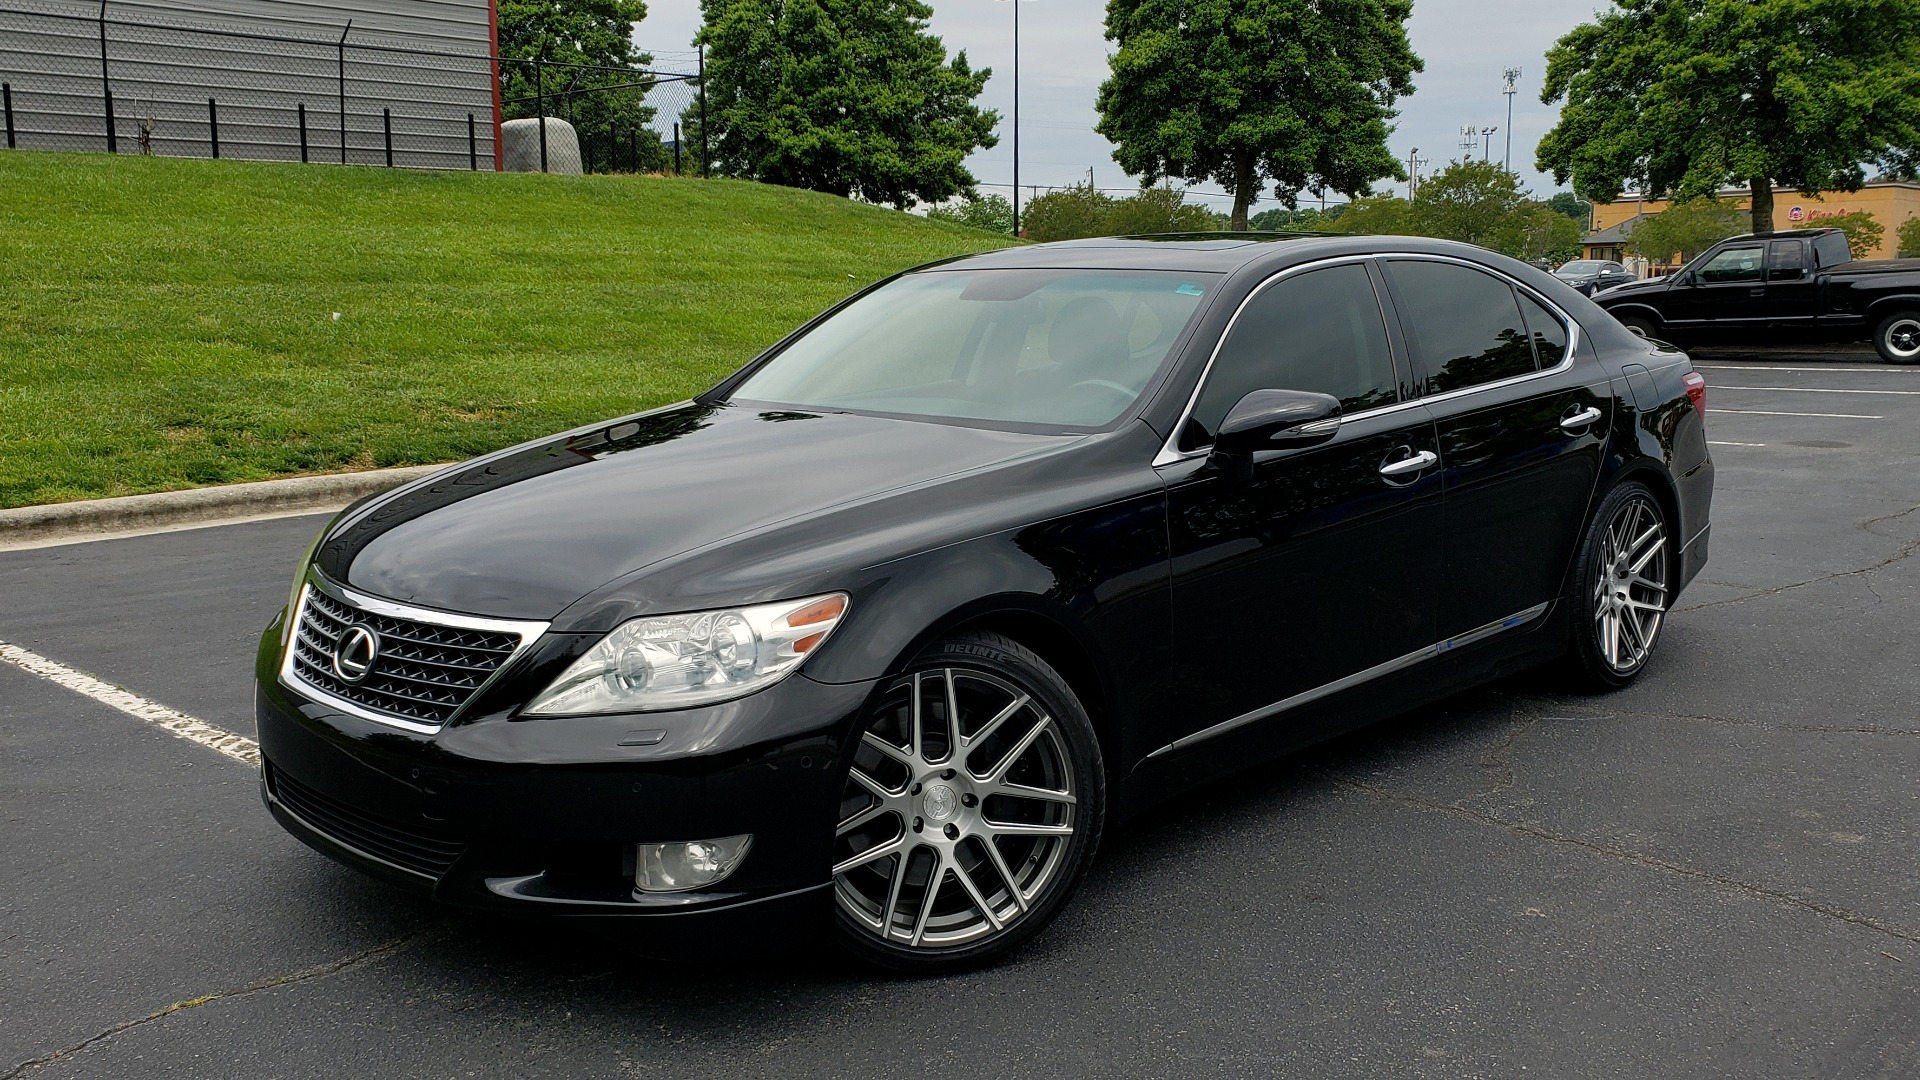 Used 2012 Lexus LS 460 COMFORT W/SPORT / VENT SEATS / NAV / MARK LEV SND / SUNROOF for sale Sold at Formula Imports in Charlotte NC 28227 1